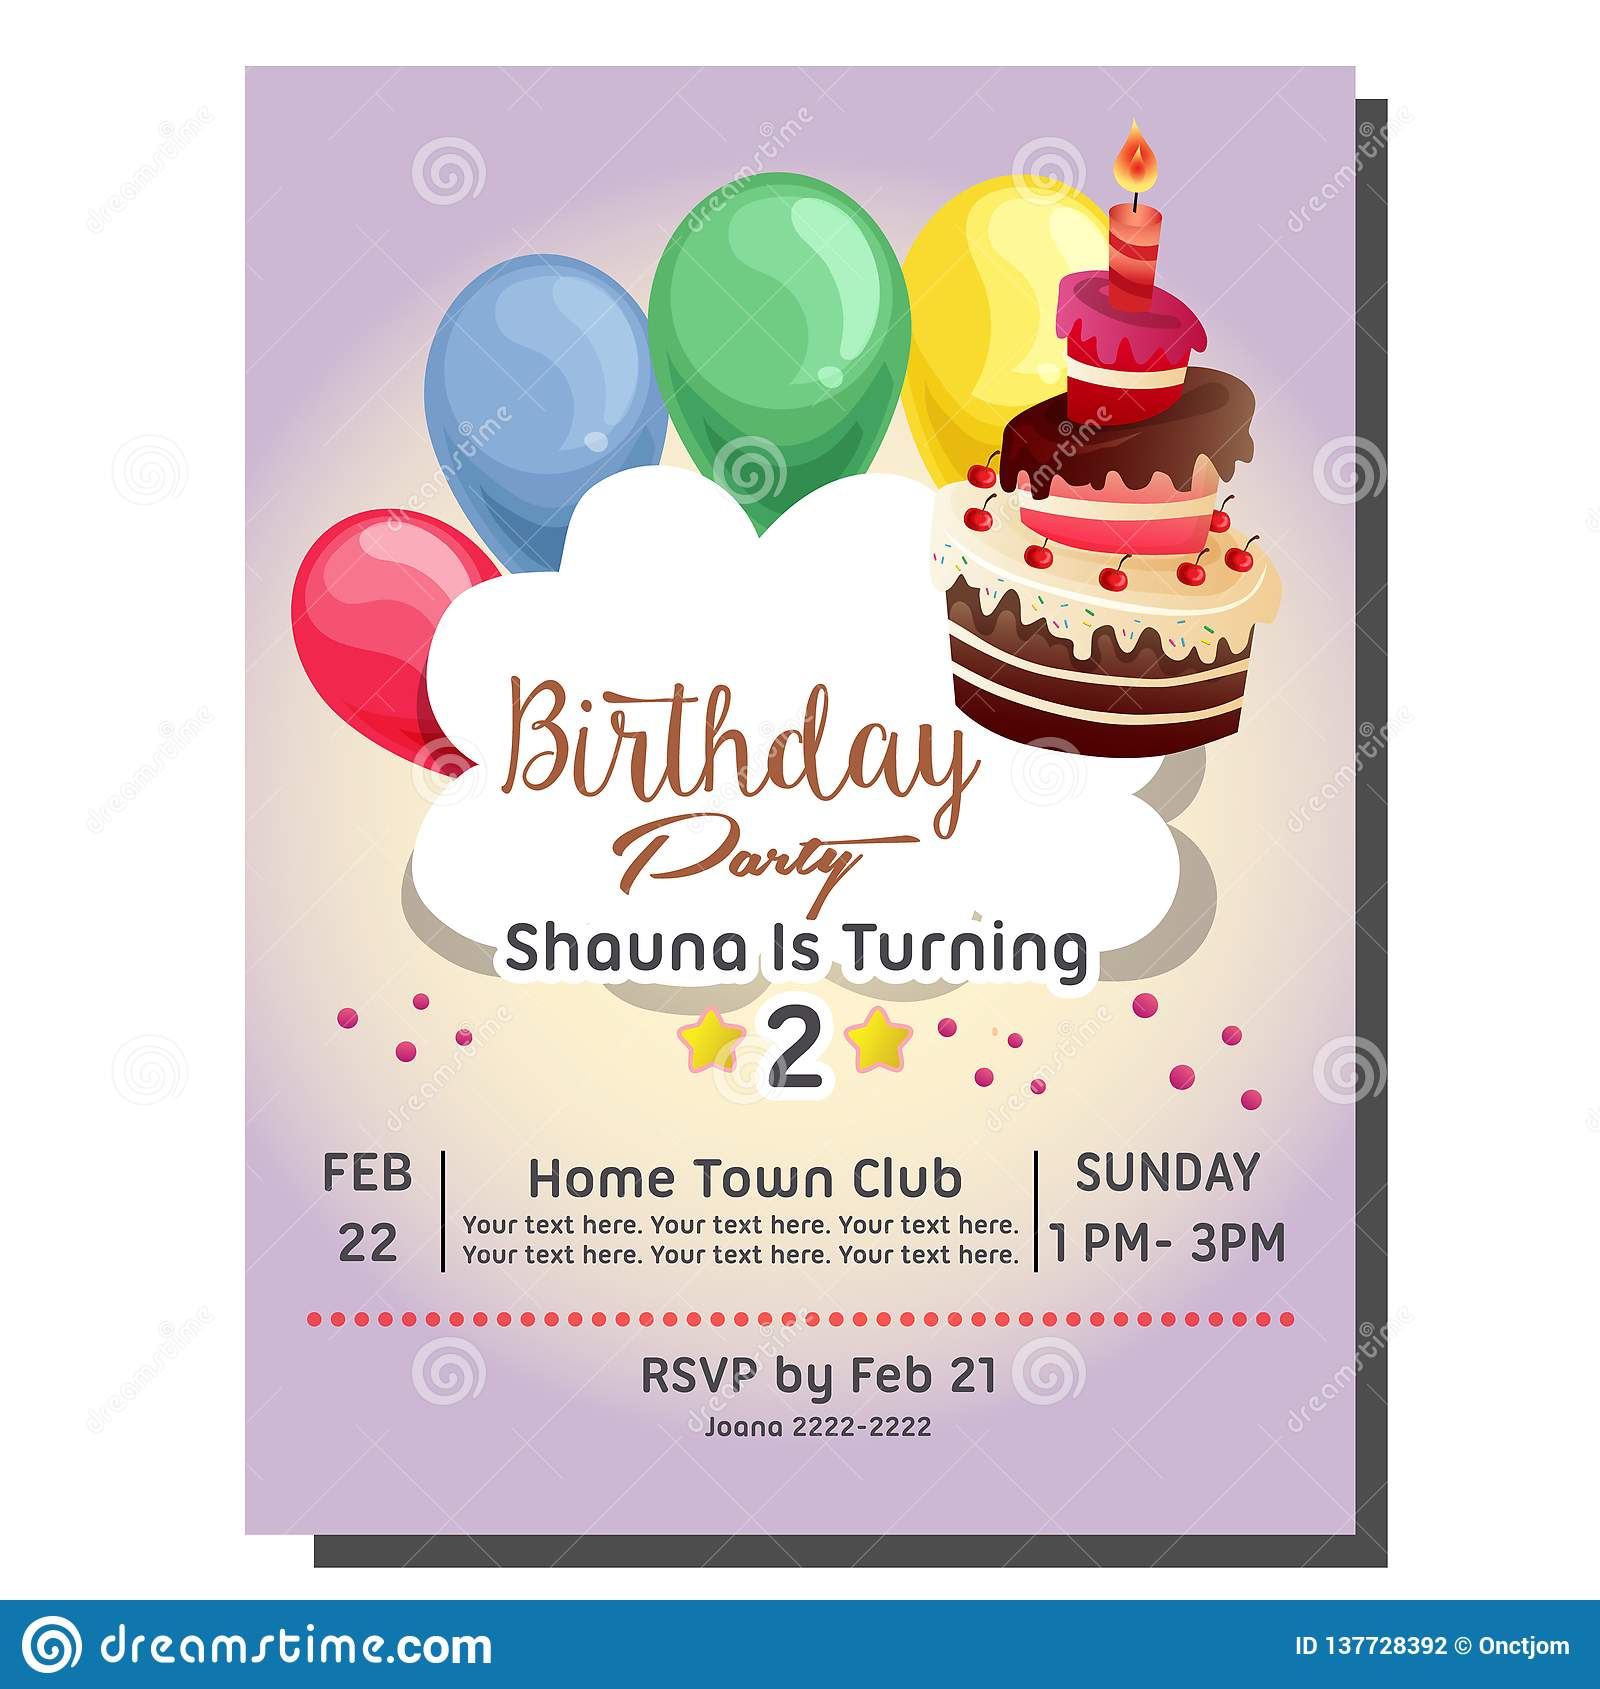 2nd Birthday Party Invitation Card With Balloon And Candle